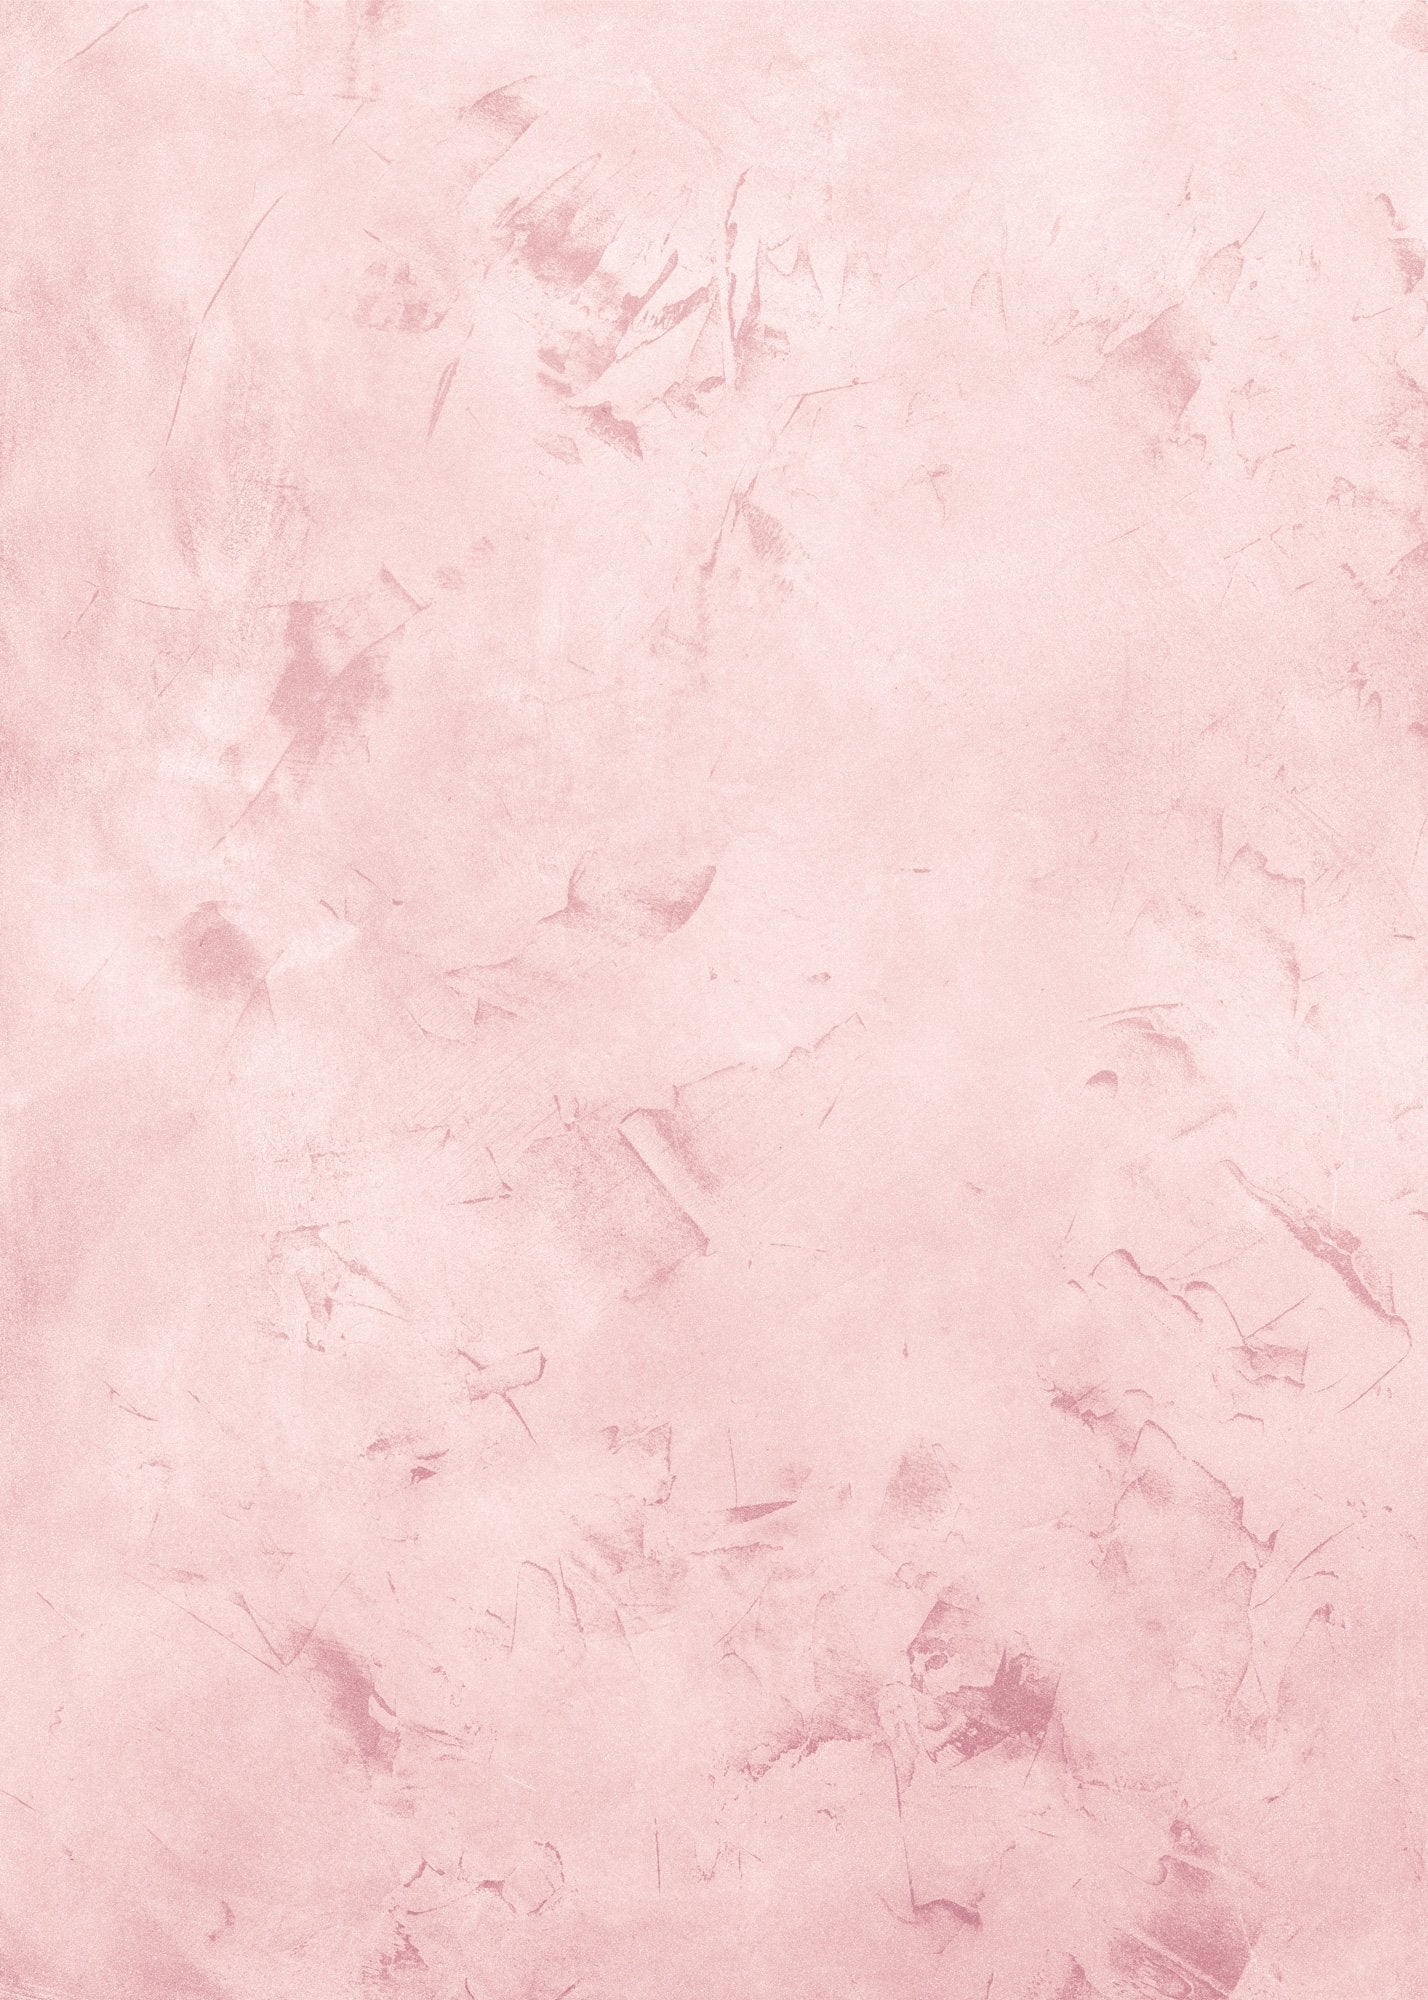 Cirrus Blush Large Vinyl Photography Backdrop by Club Backdrops